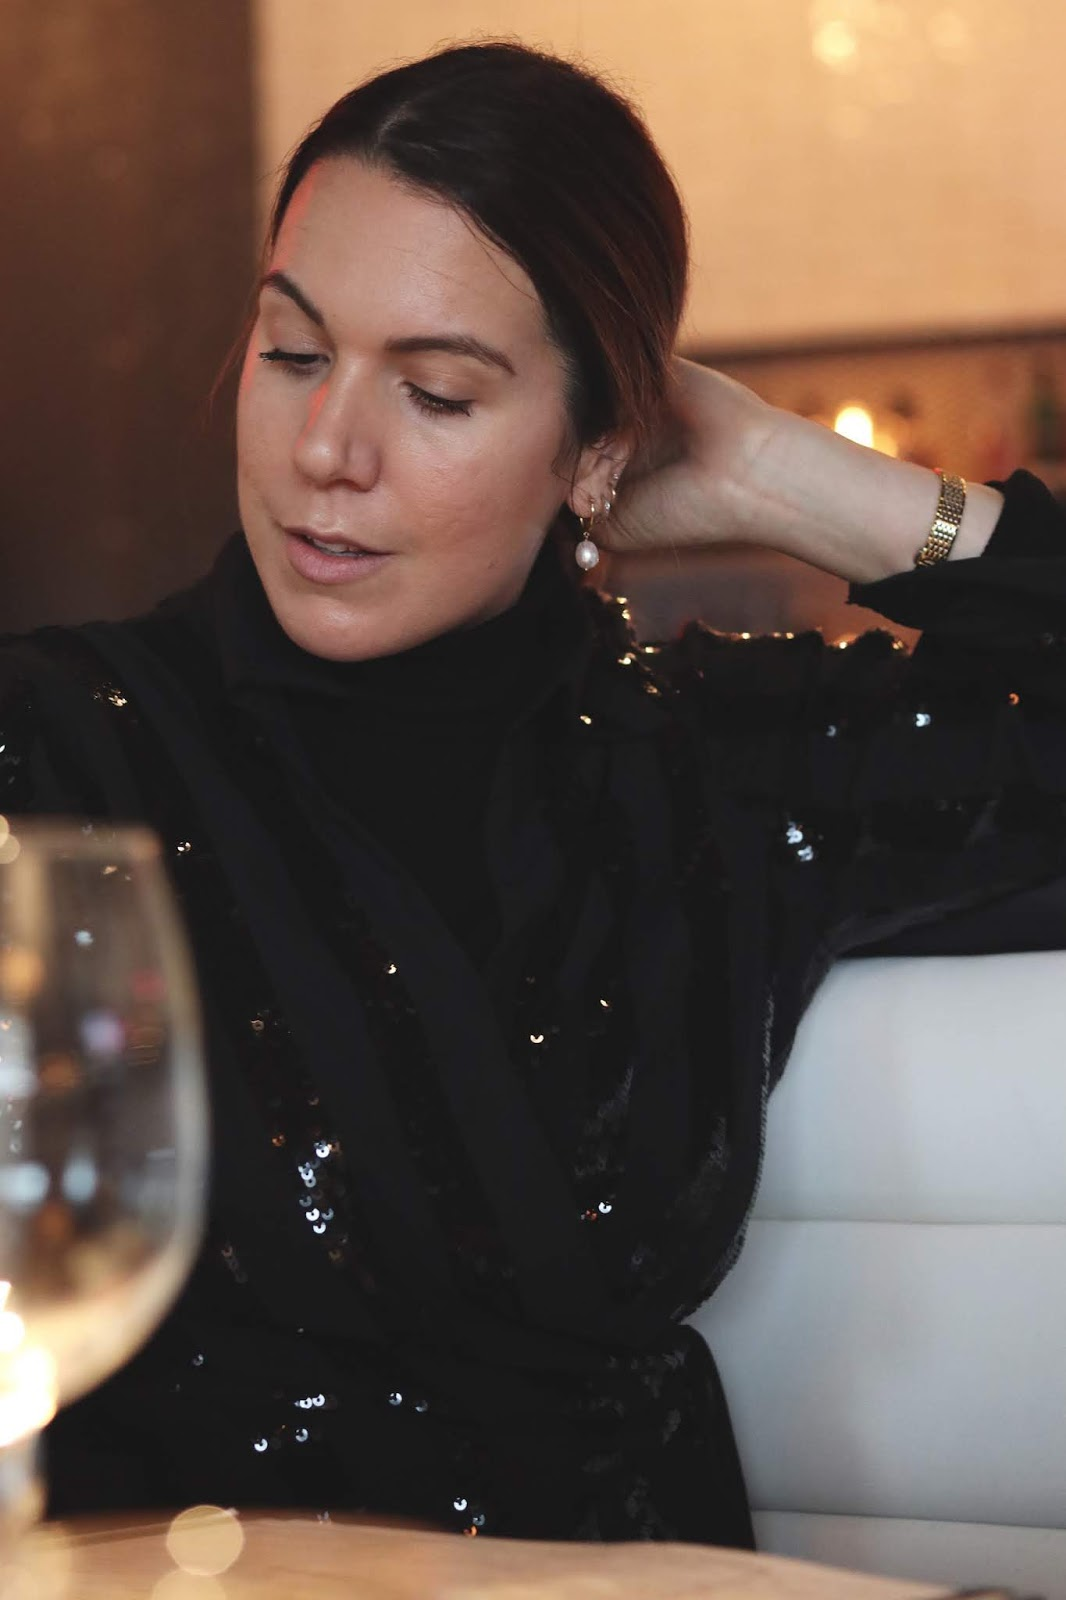 le chateau sequin blouse festive party nye outfit idea vancouver blogger aleesha harris